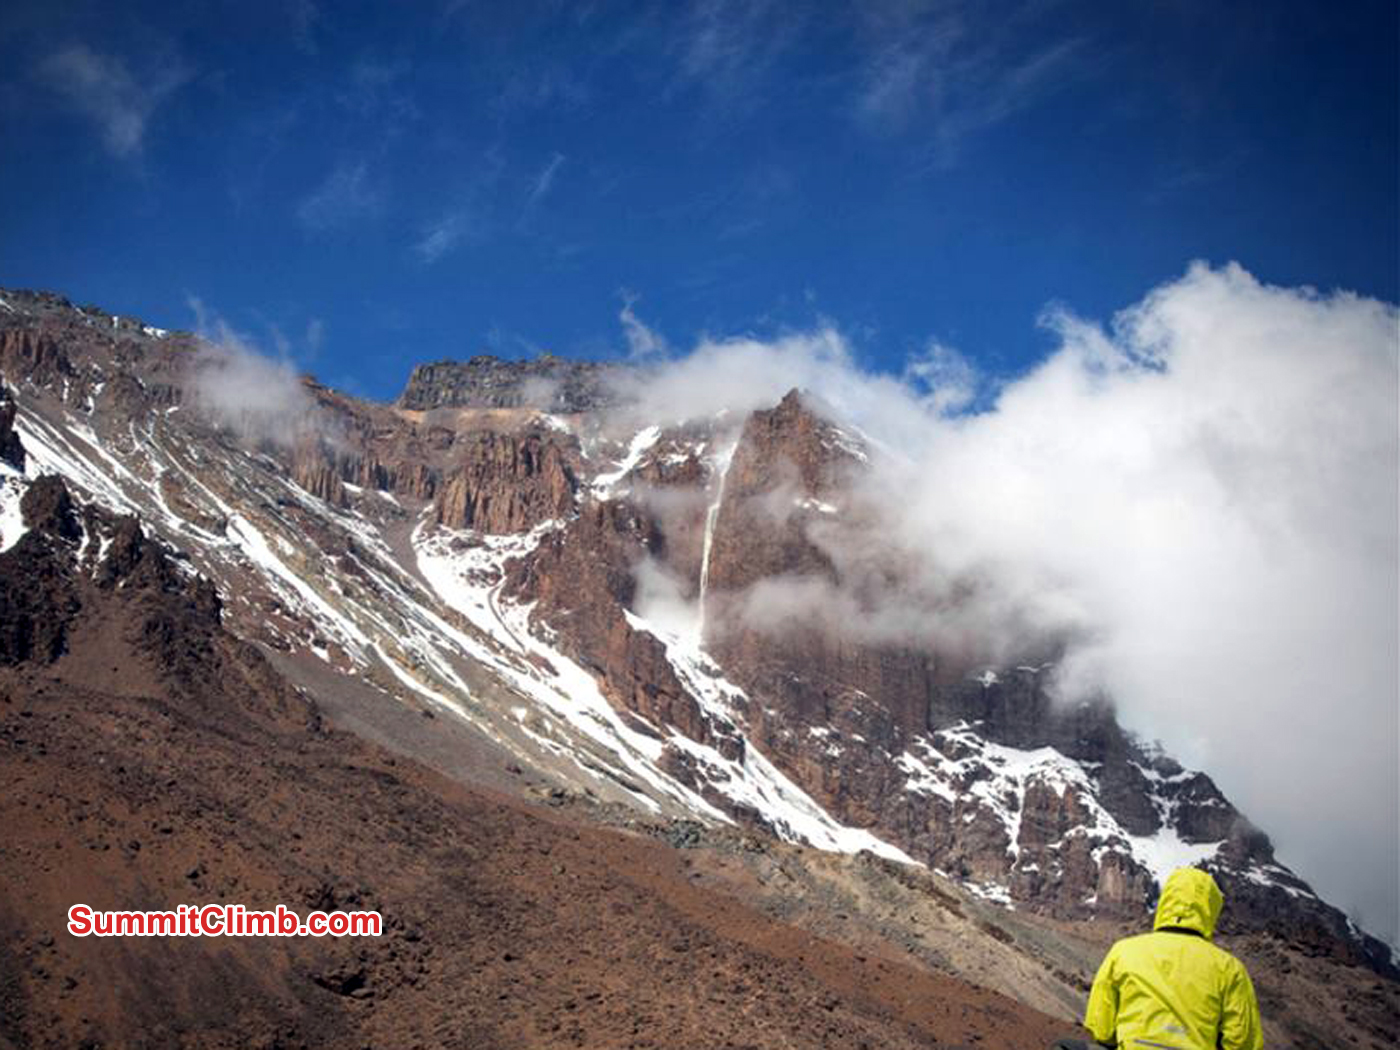 Aconcagua expedition climbing